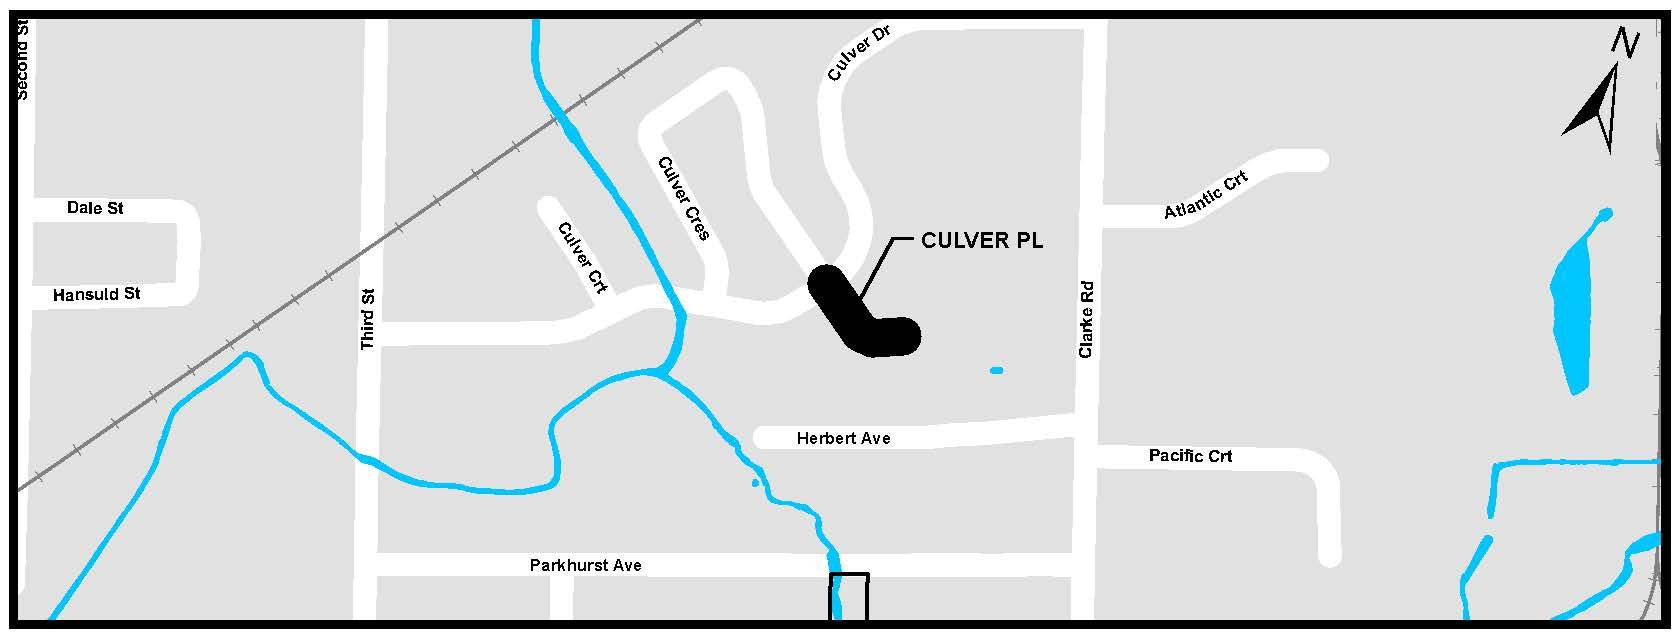 A map of Culver Place. For more information, assistance, or to ask questions, please contact Kyle Fairhurst at kfairhur@london.ca